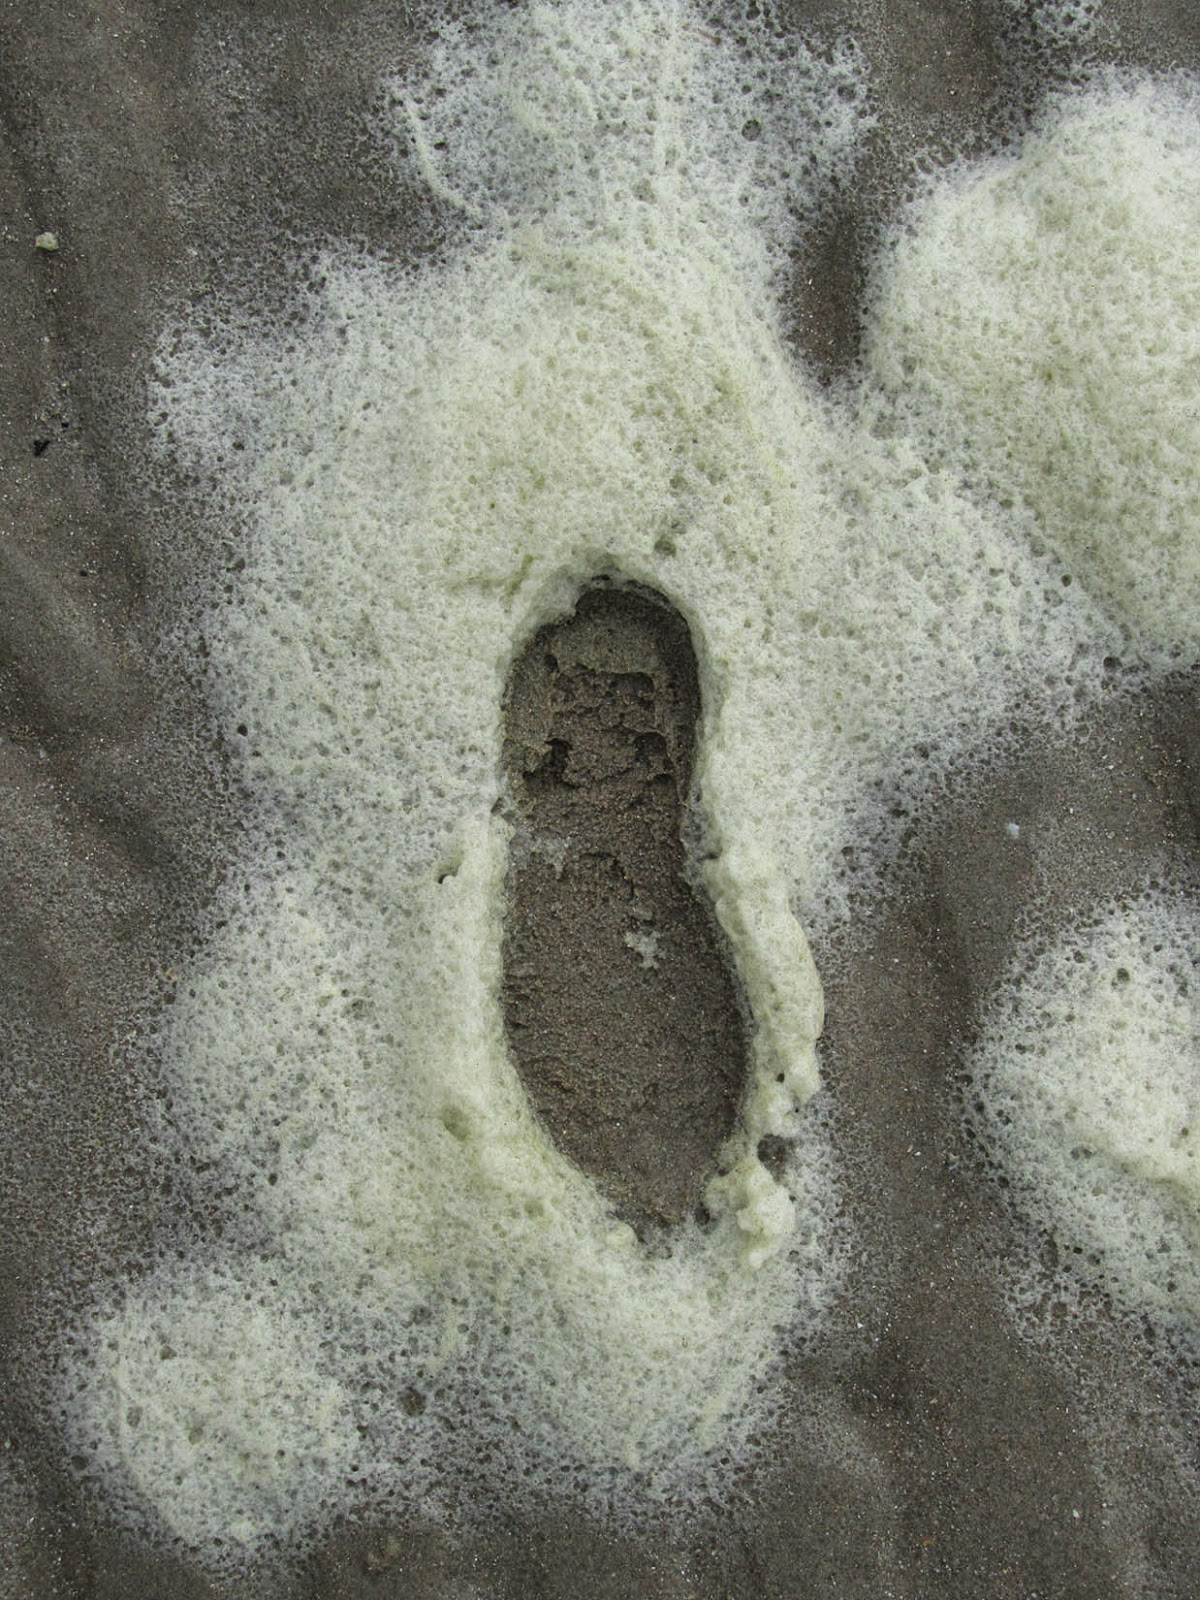 footstep in sea foam